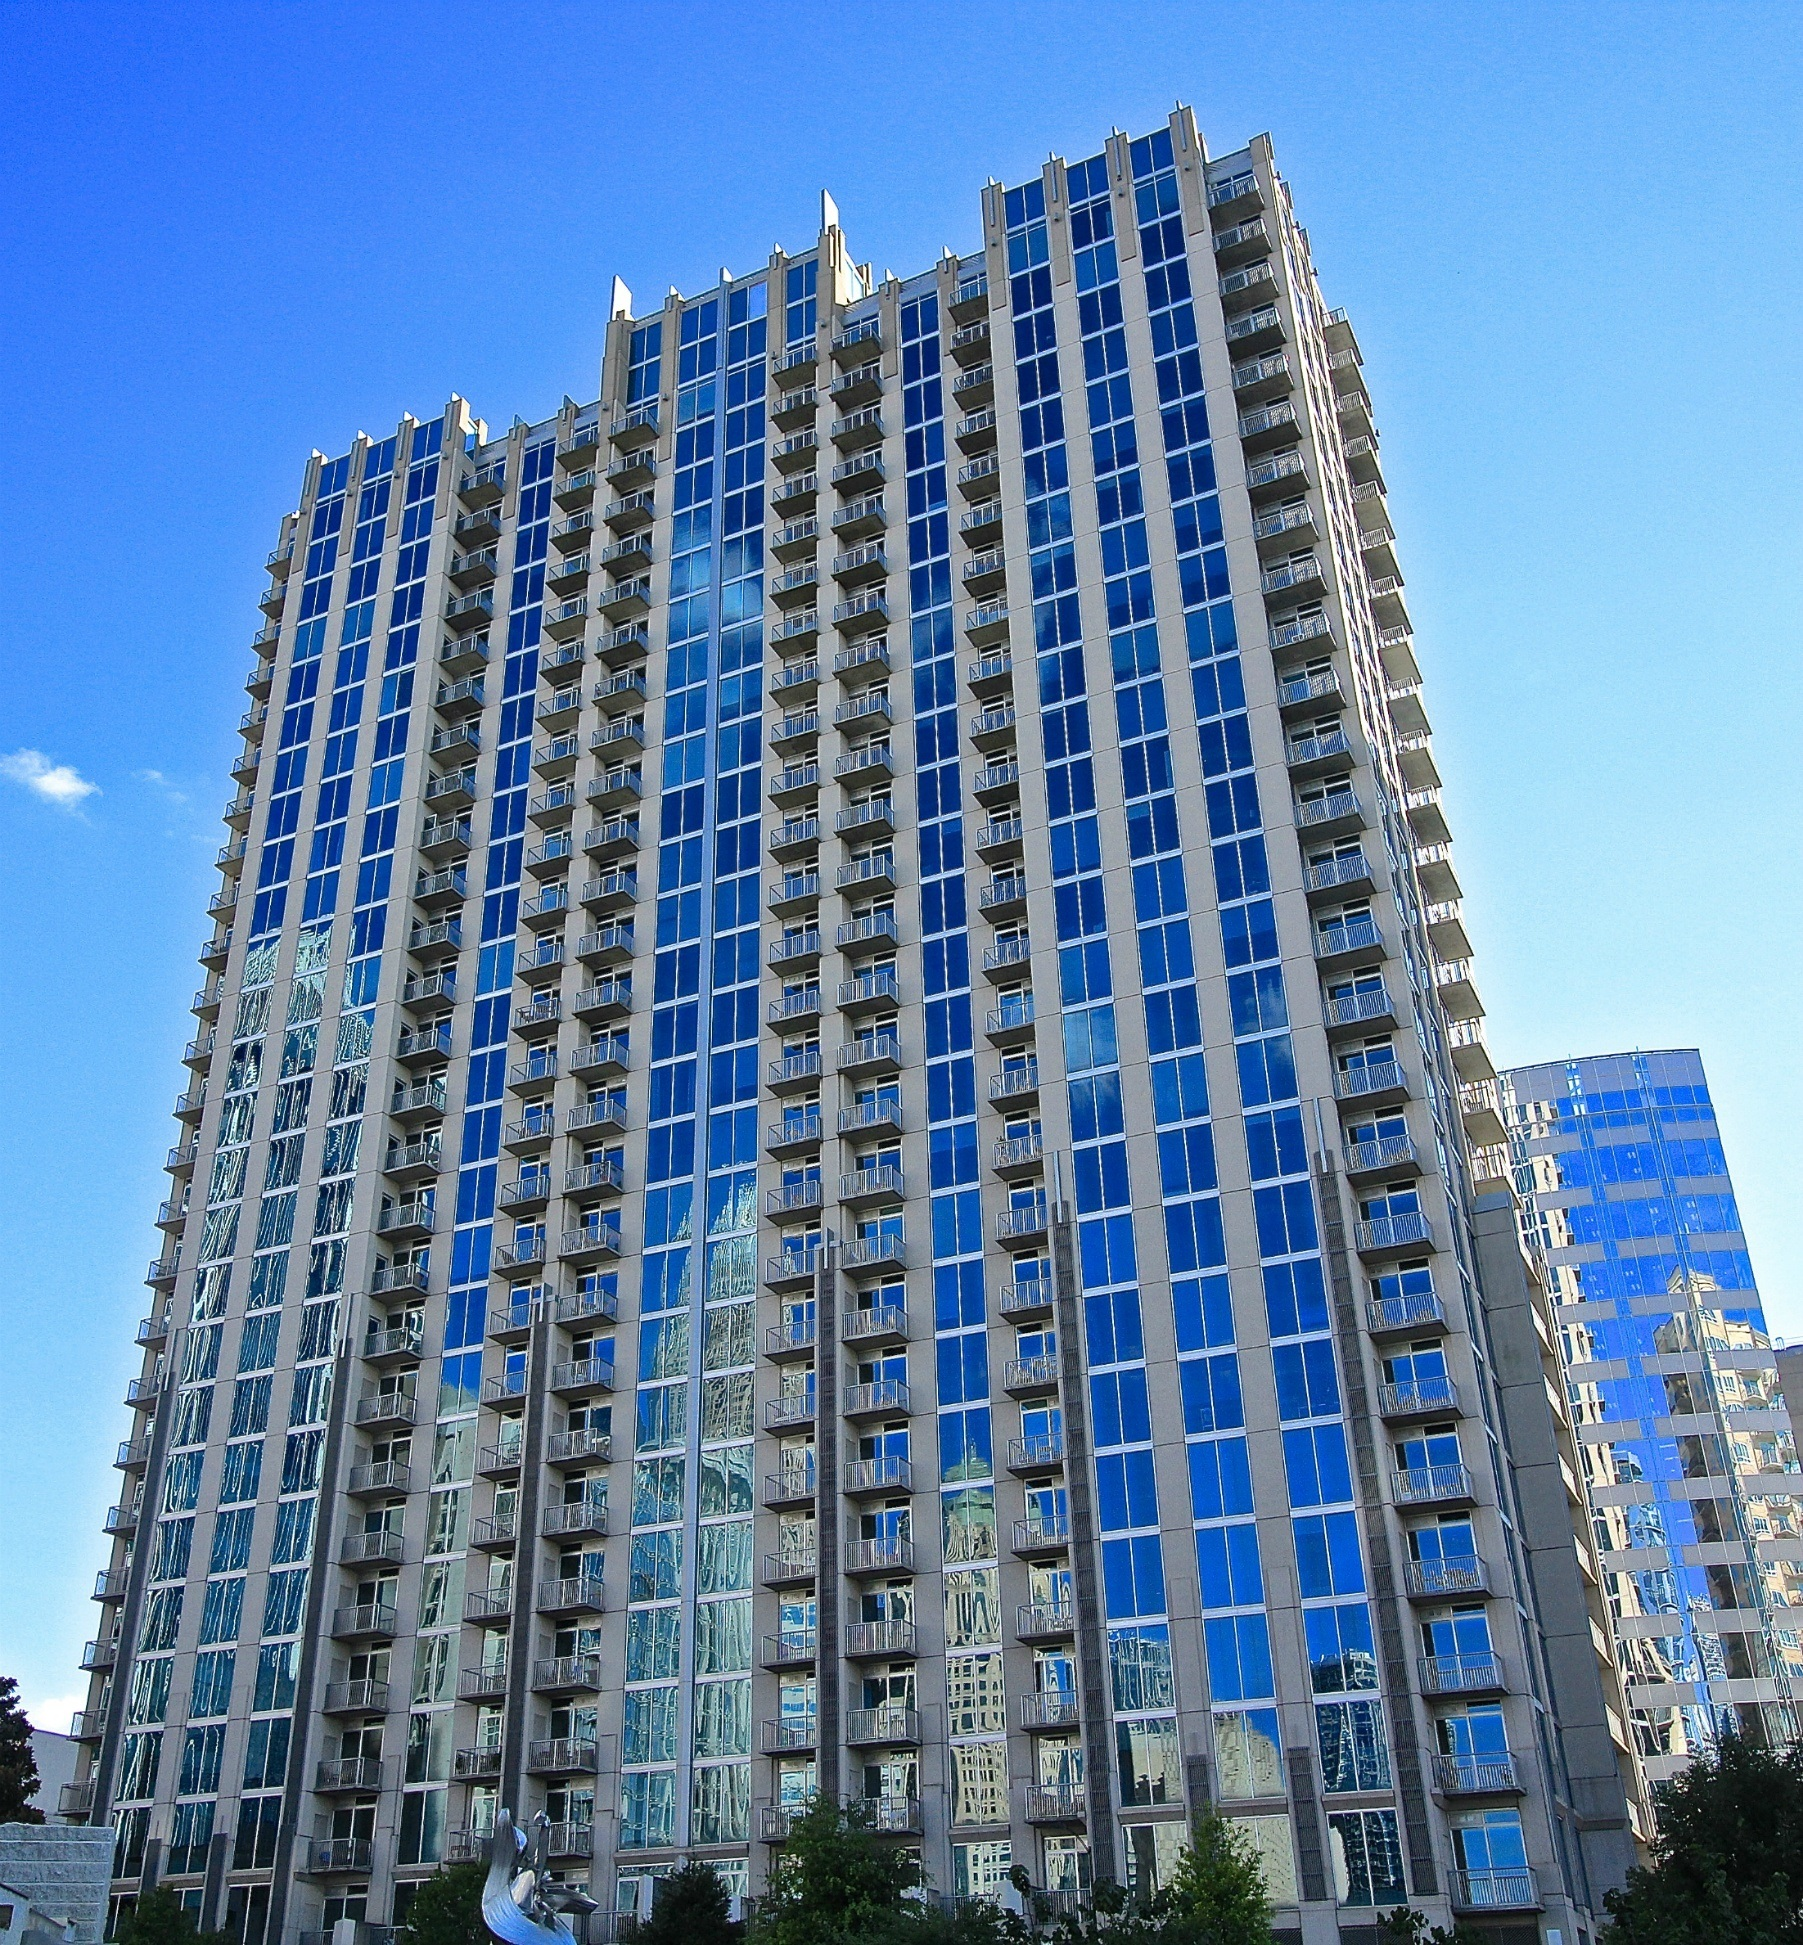 Apartments In Charlotte Nc: The Catalyst Apartments, Uptown